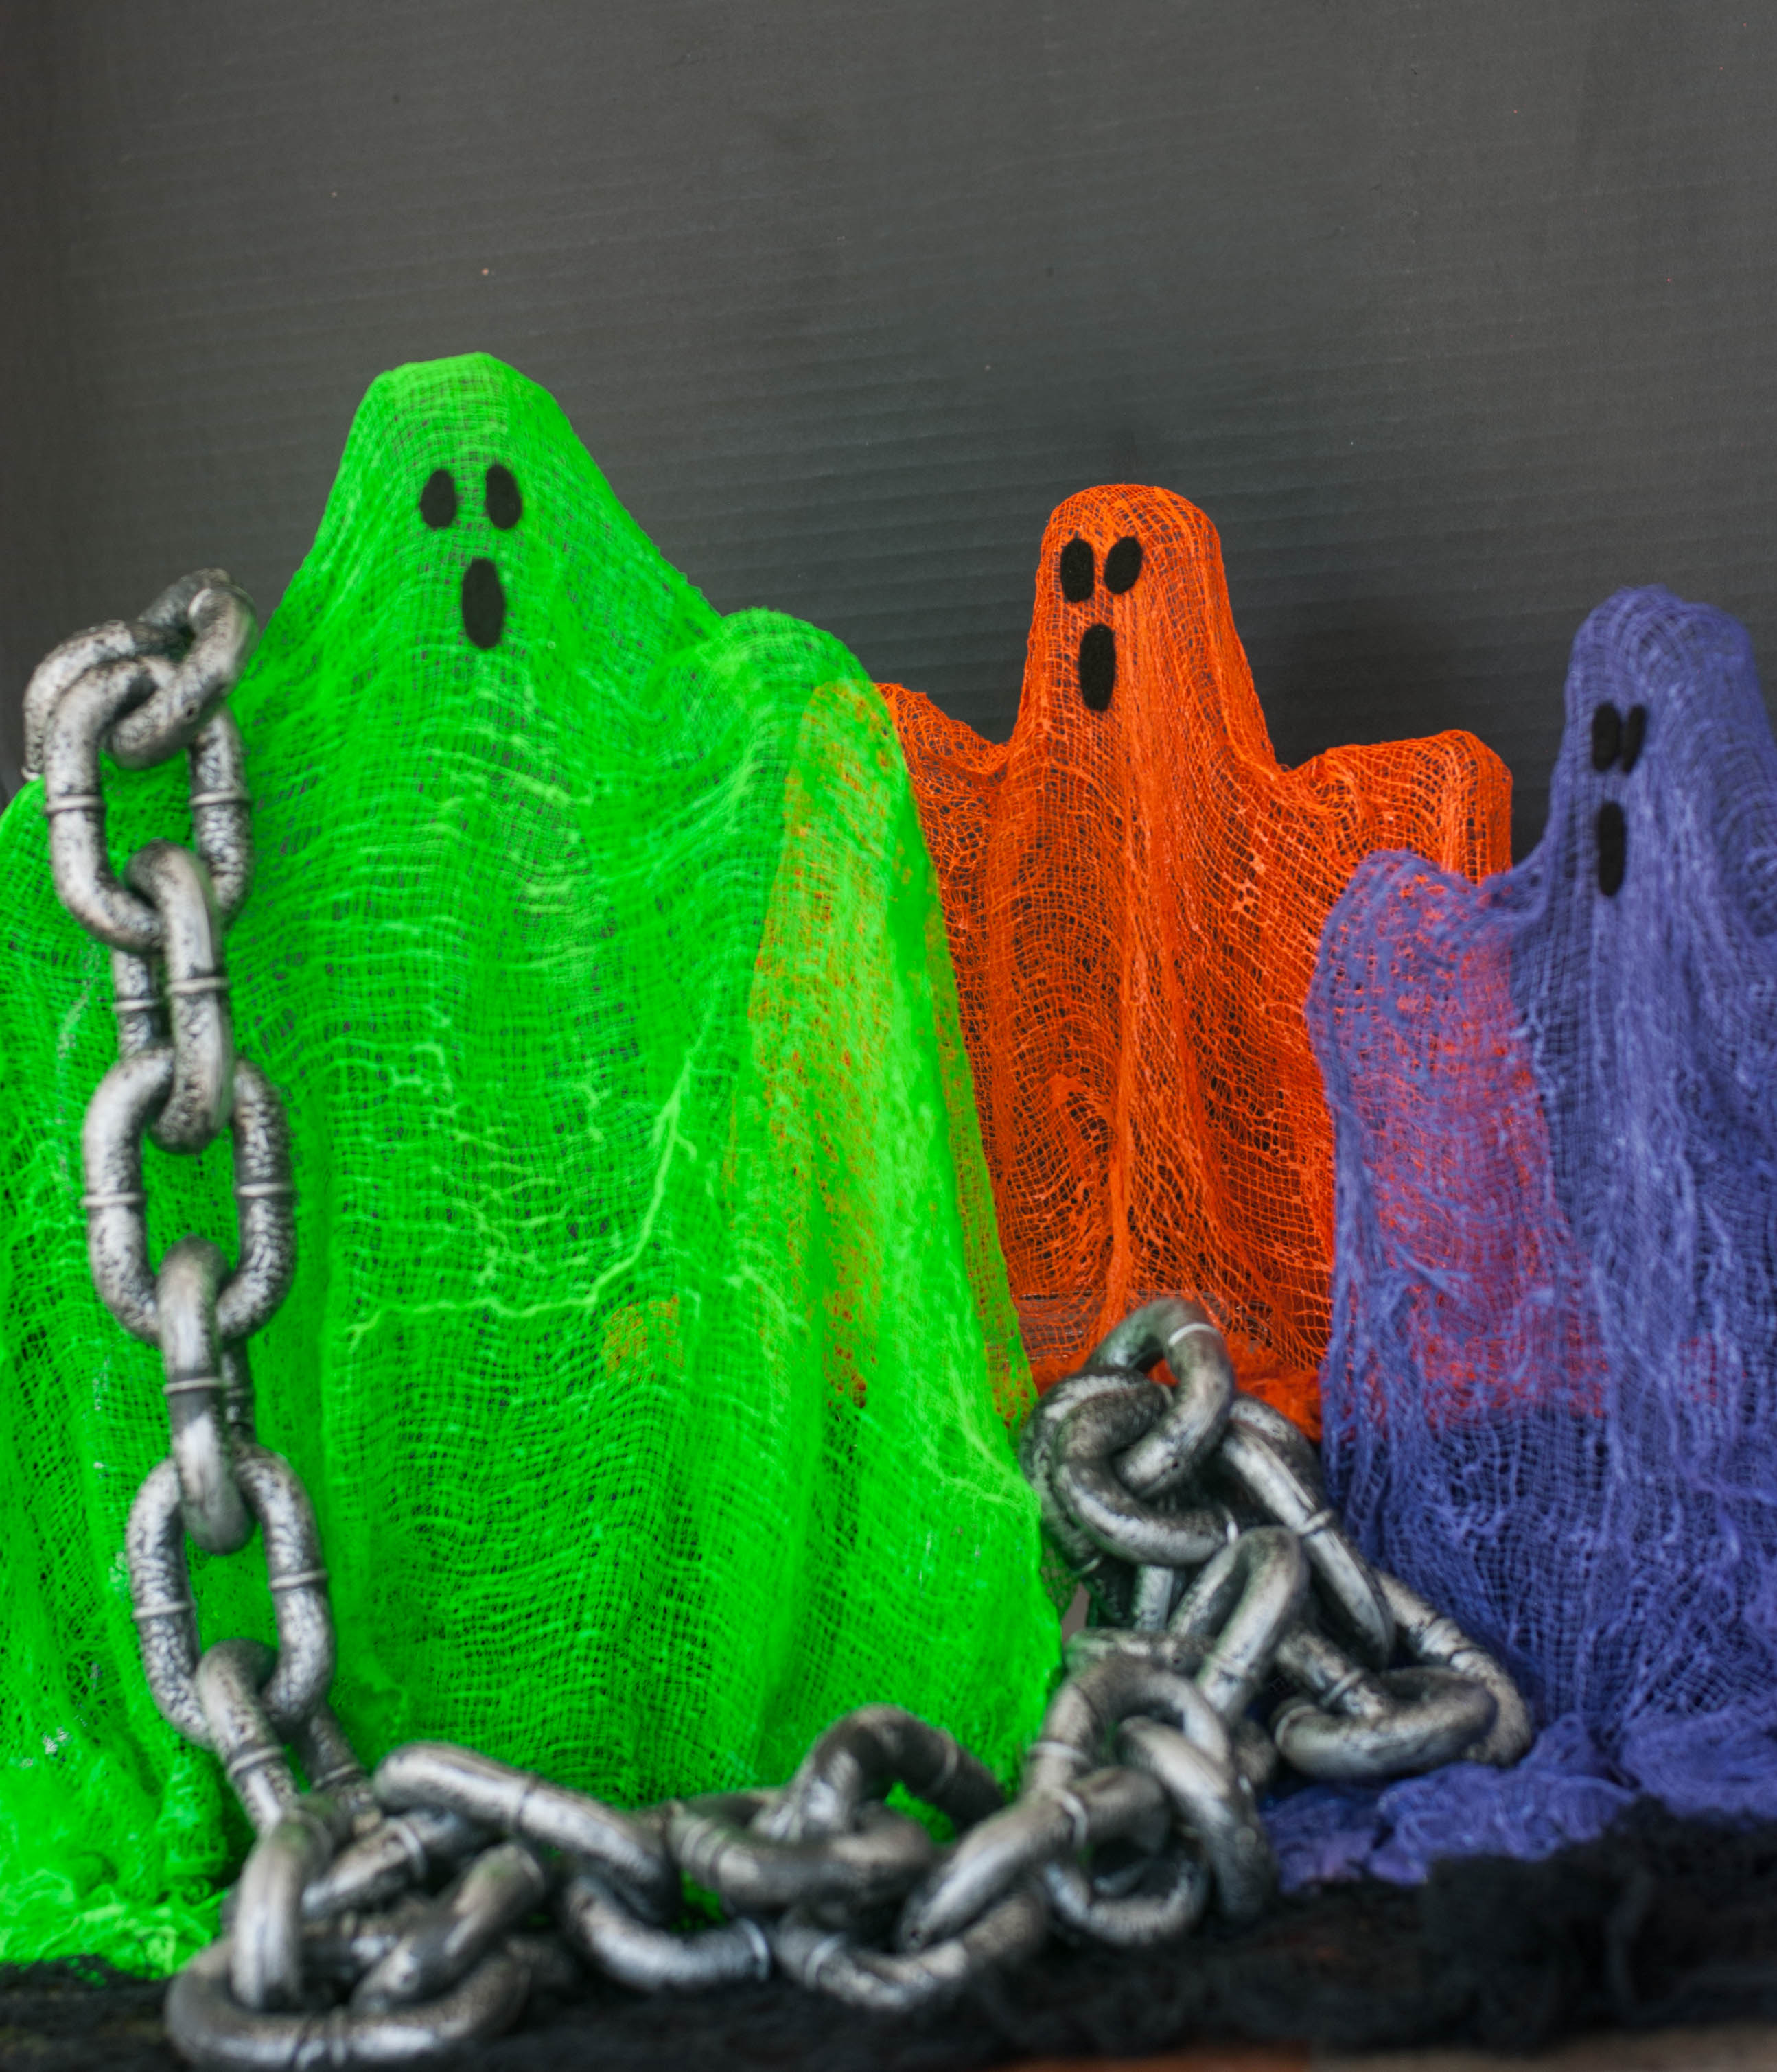 Made in bright Halloween colors, these stand up ghosts are bringing color back to life! Get it?